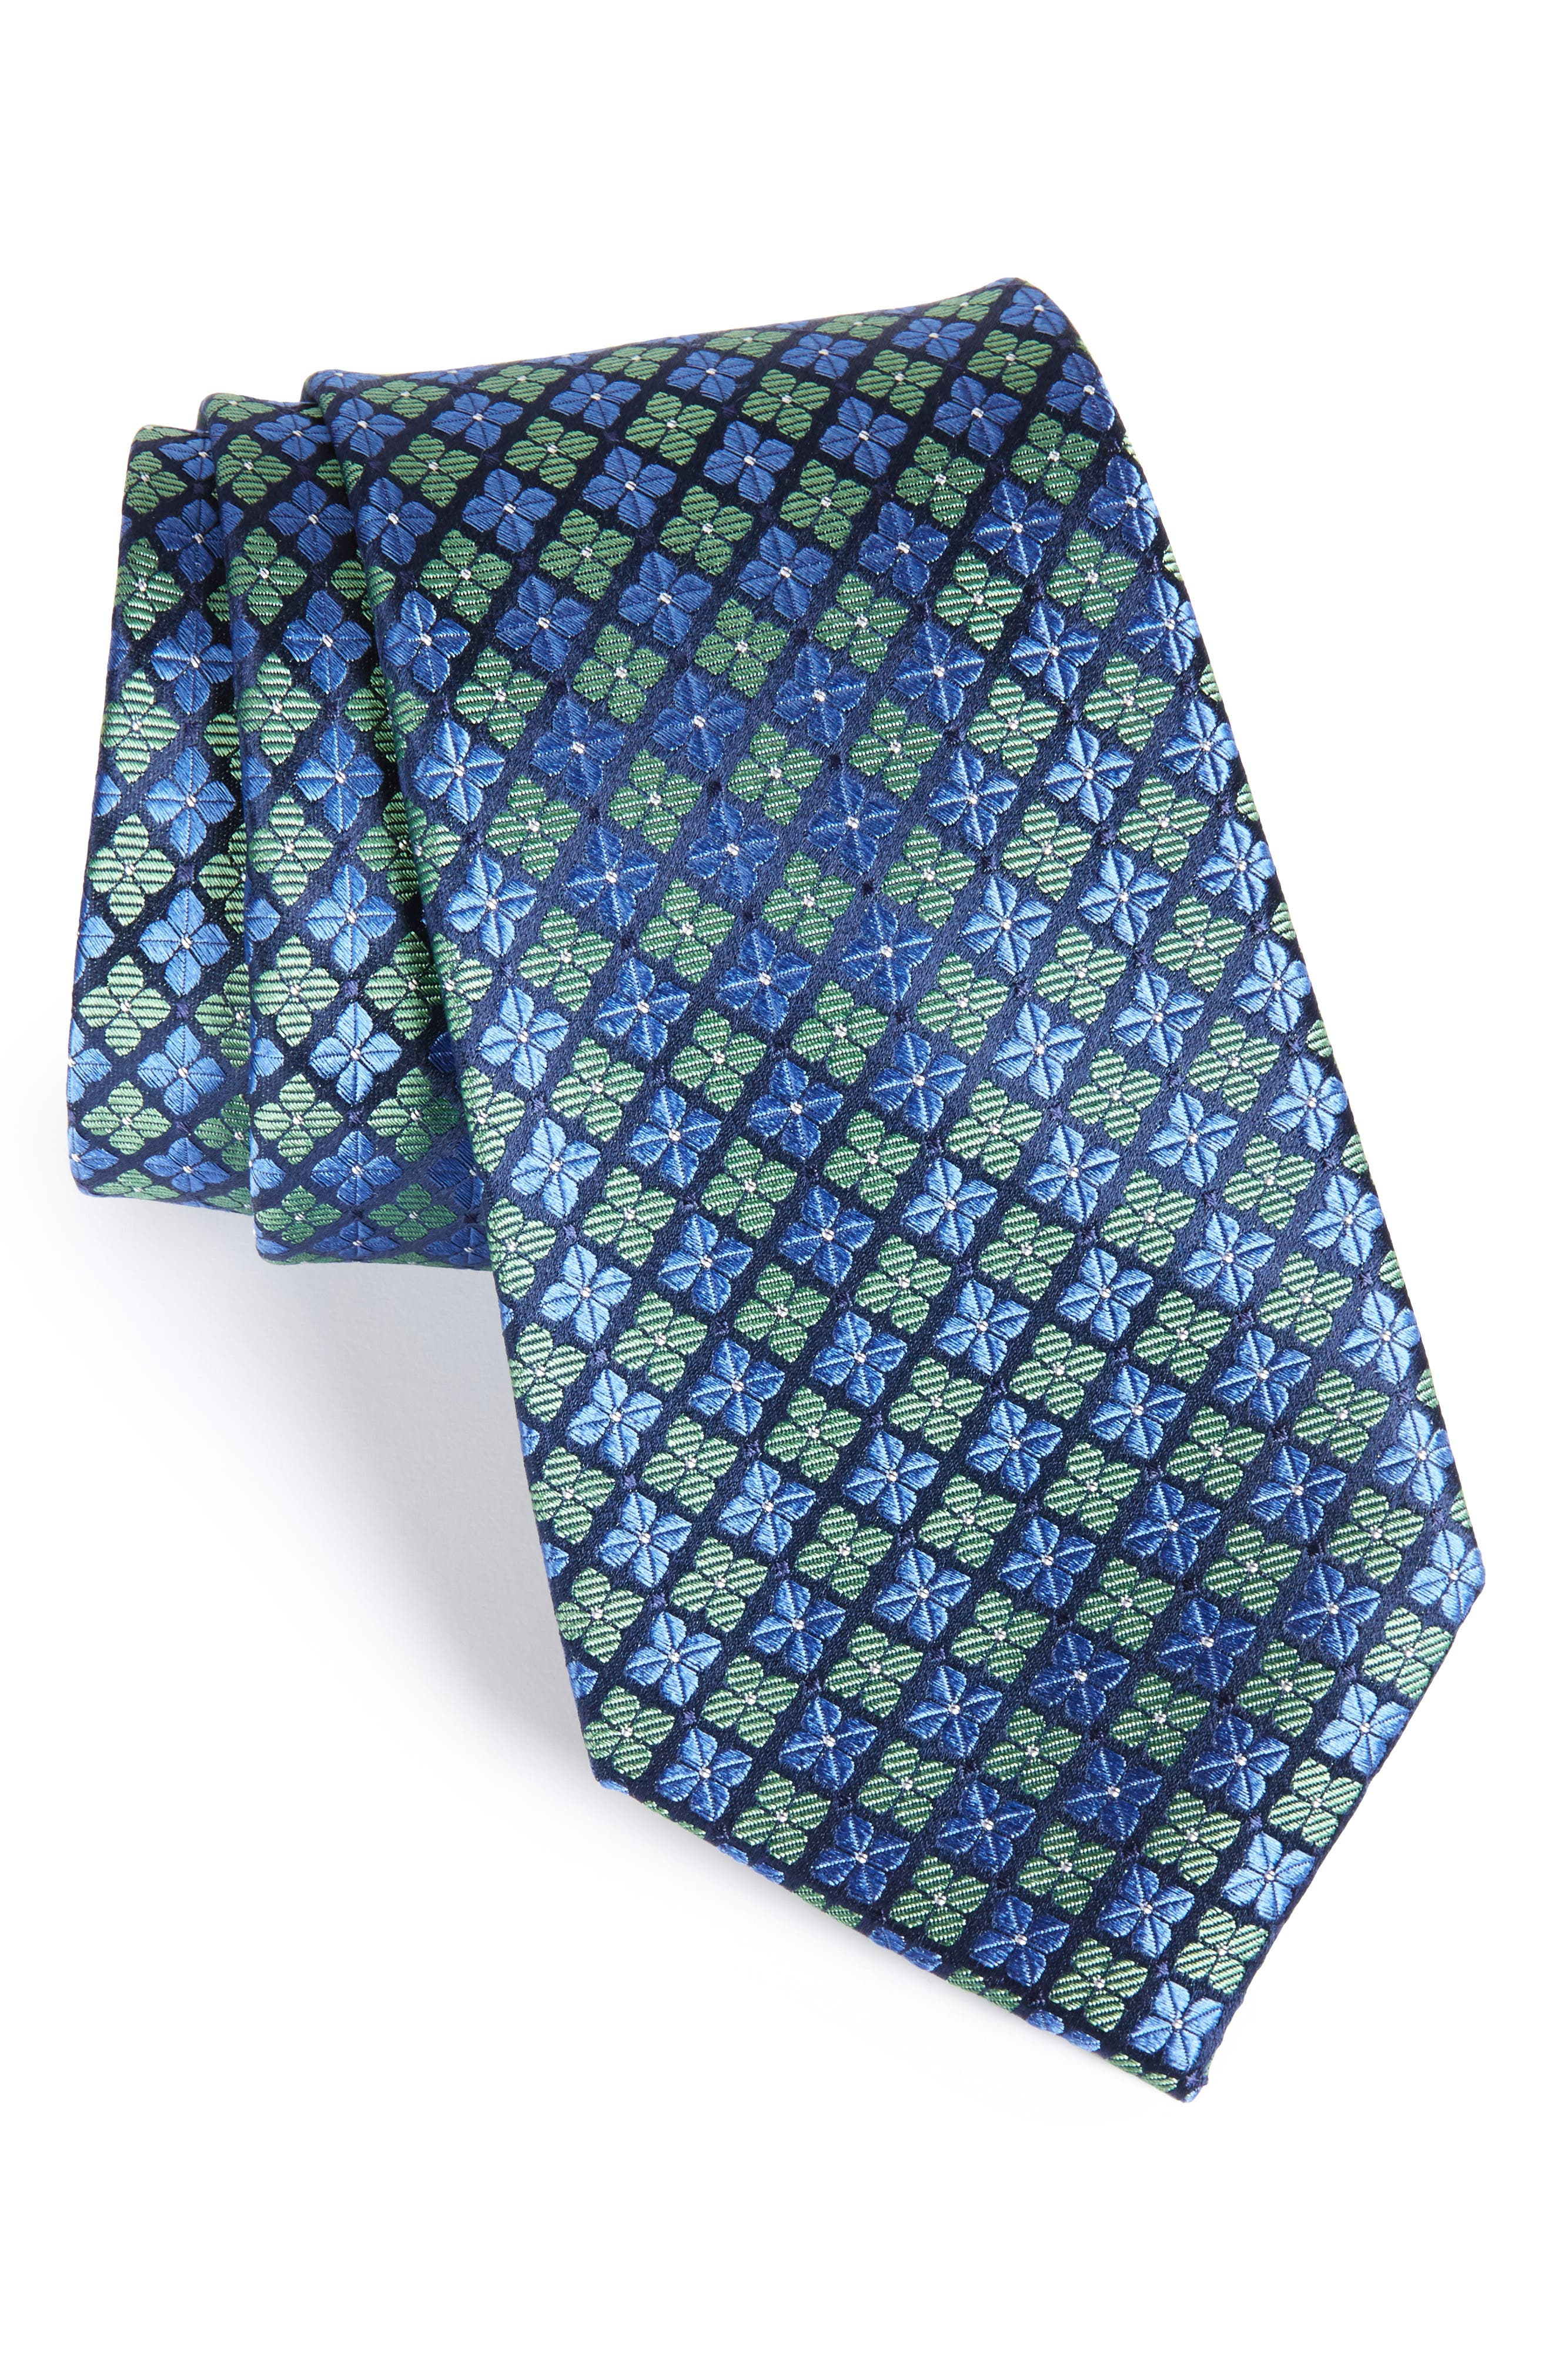 Alternate Image 1 Selected - Nordstrom Men's Shop Shamrock Silk Tie